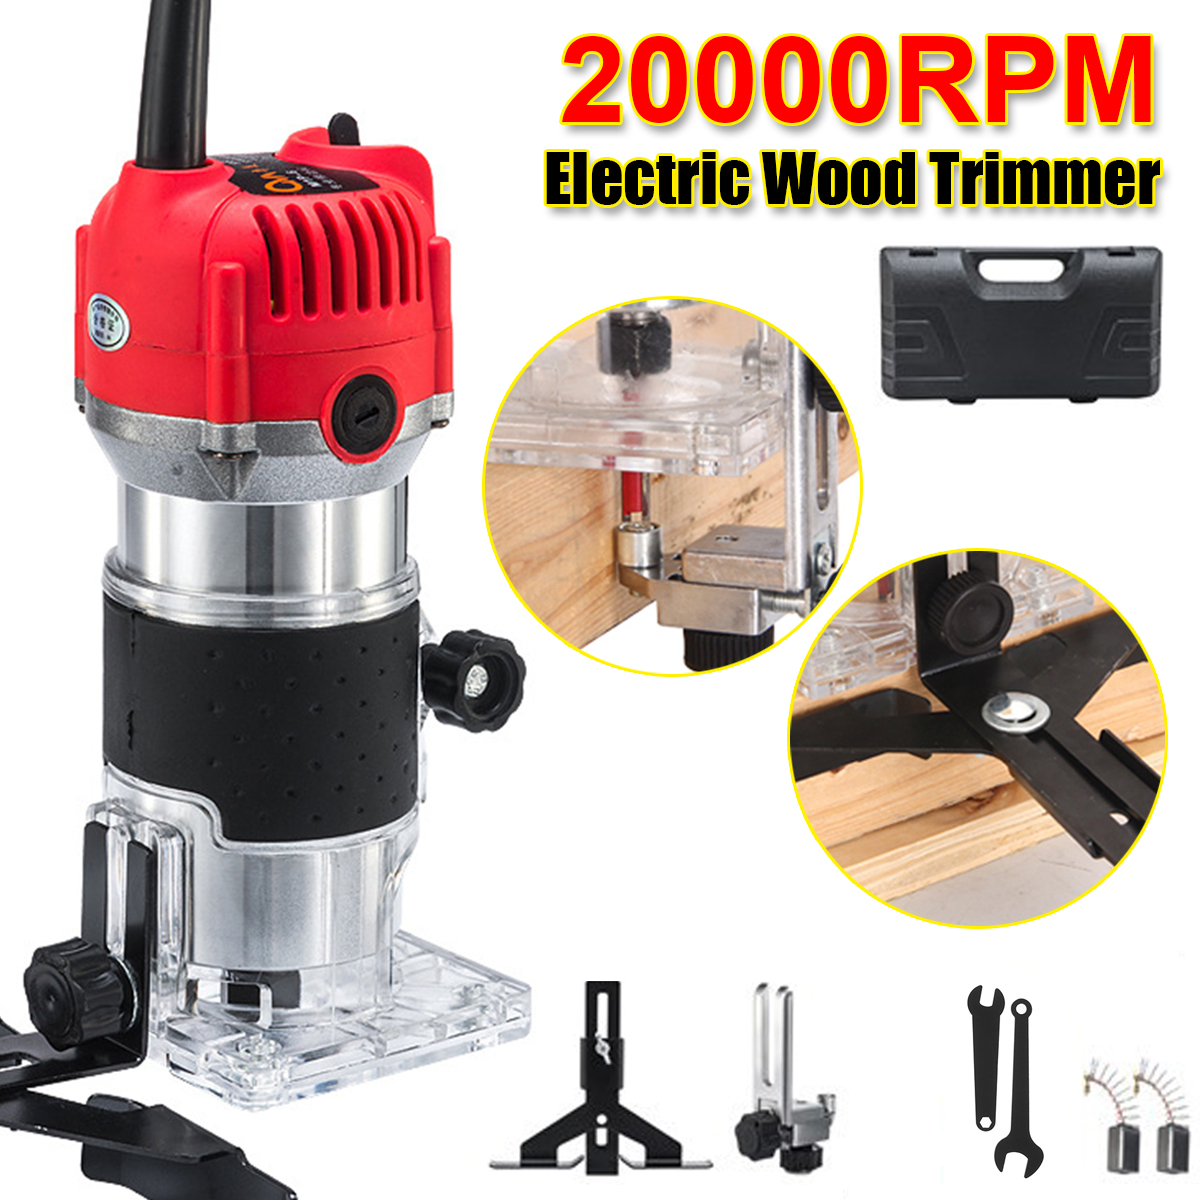 20000rpmWoodworking Trimmer Hand Machine Machine Carving Electric Wood 800W Trimming Engraving Slotting Box Wood Router Milling